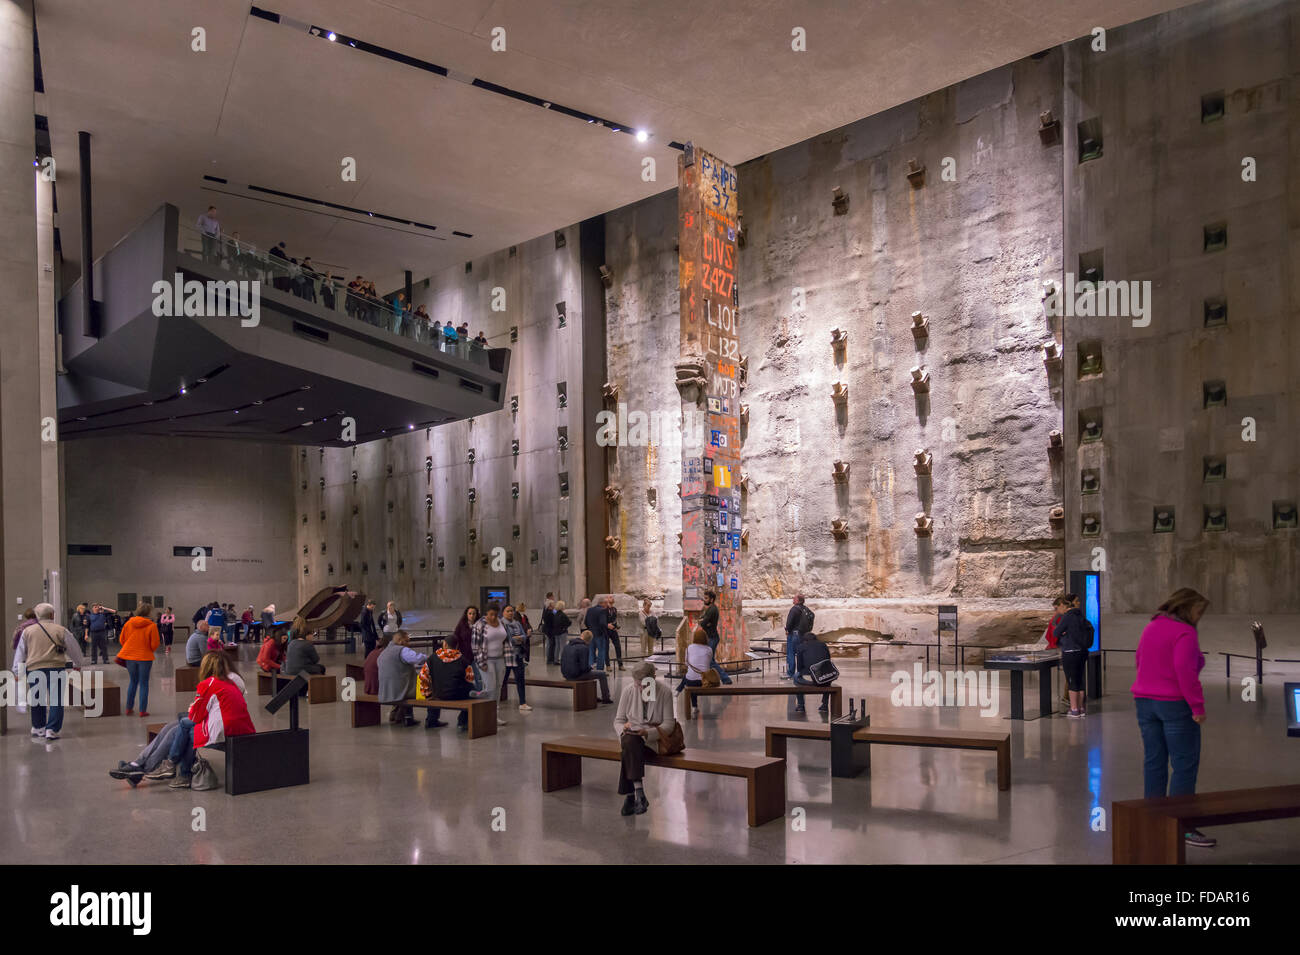 First look inside the 911 Memorial Museum  NY Daily News